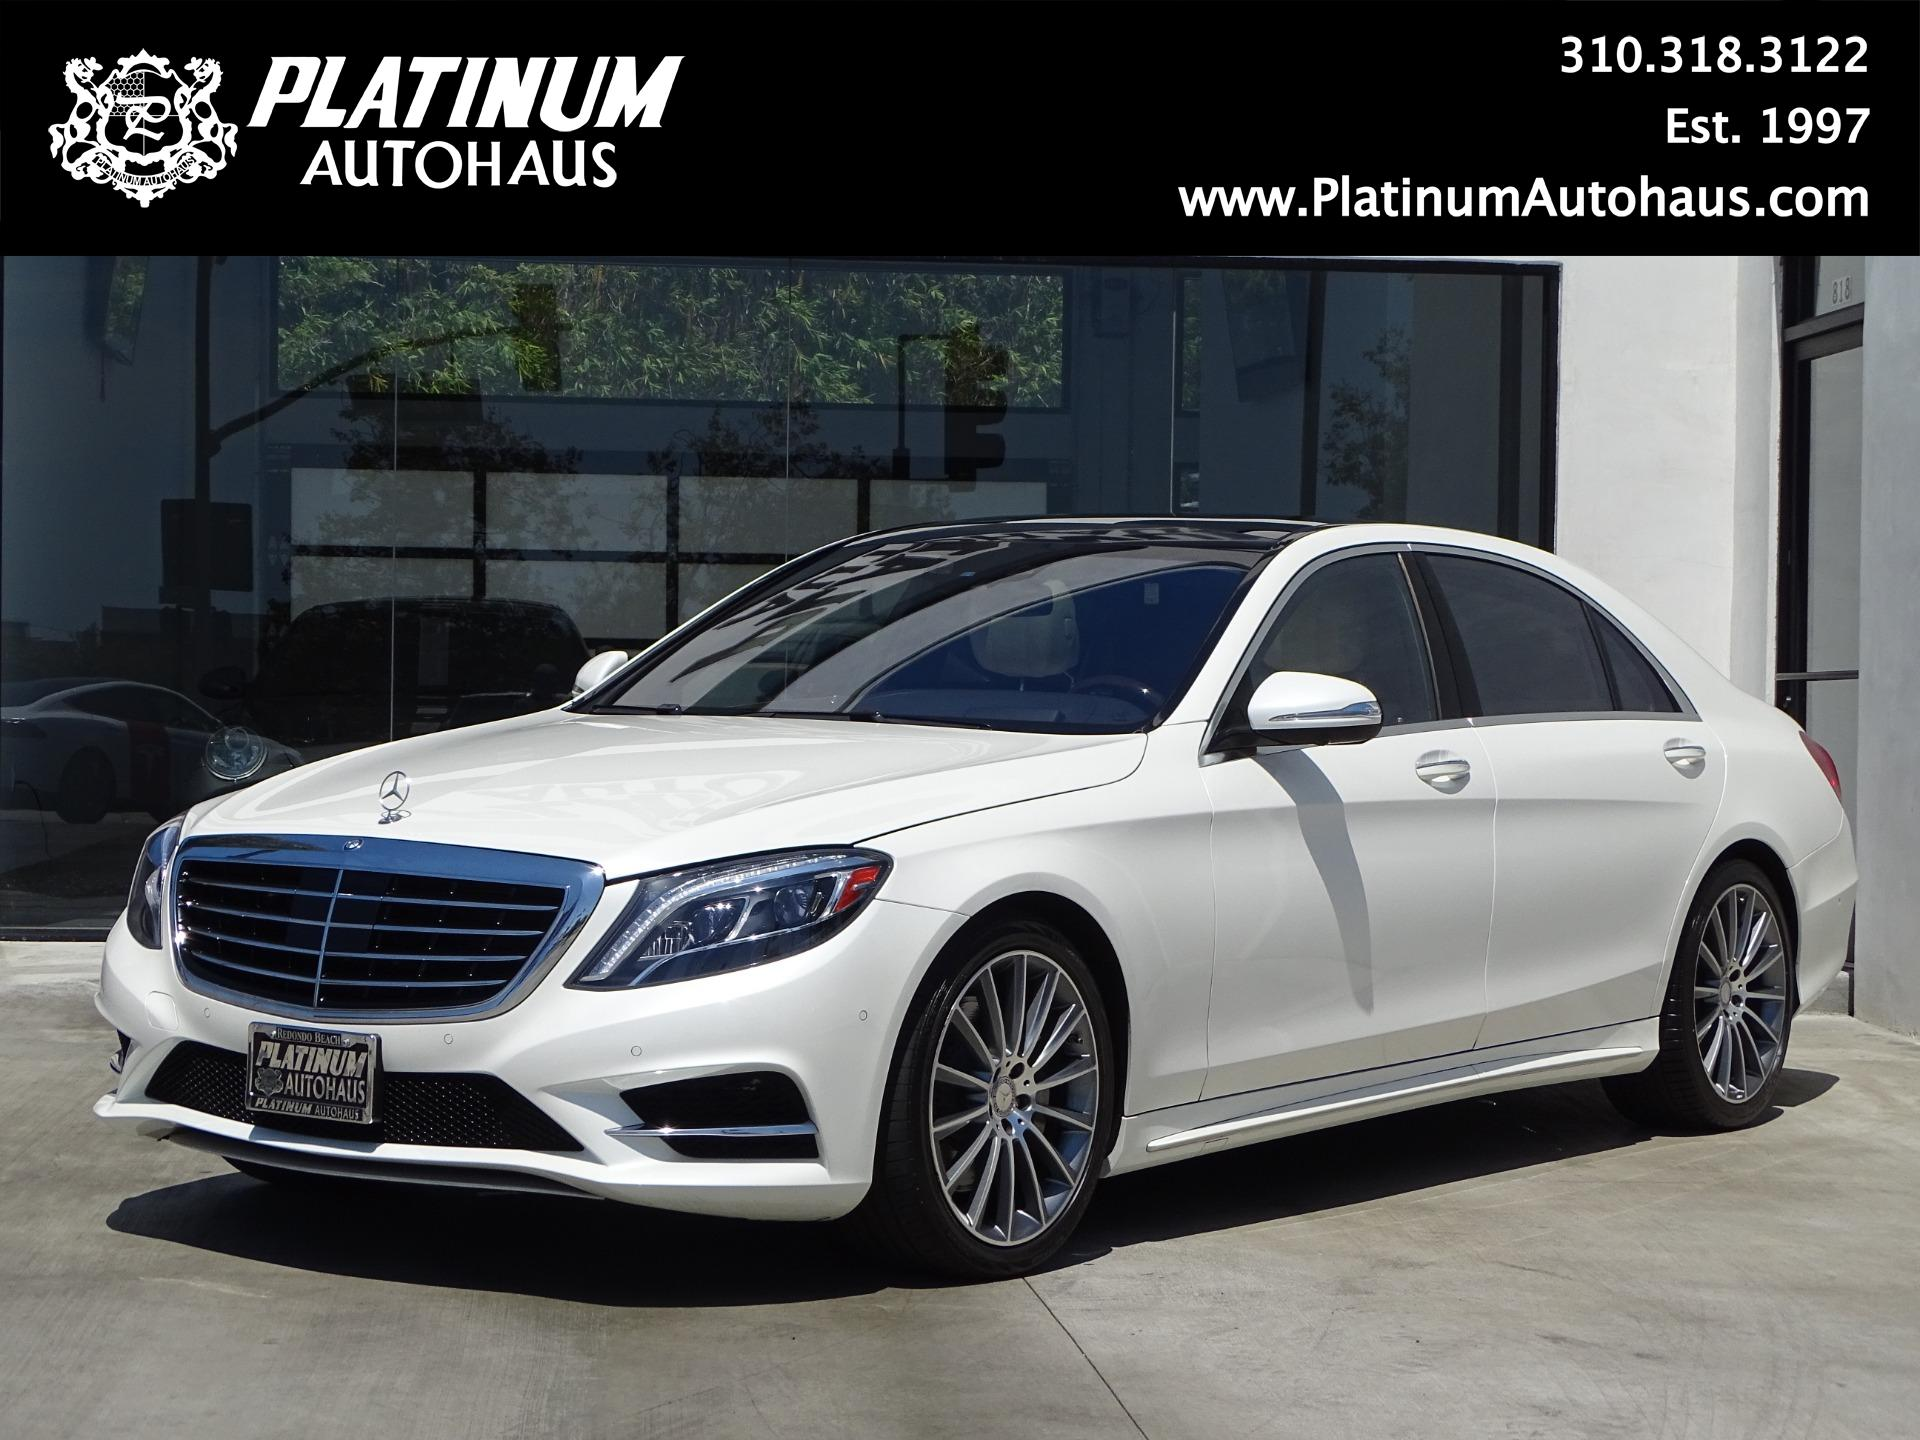 2015 mercedes benz s class s 550 stock 6134 for sale near redondo beach ca ca mercedes benz. Black Bedroom Furniture Sets. Home Design Ideas